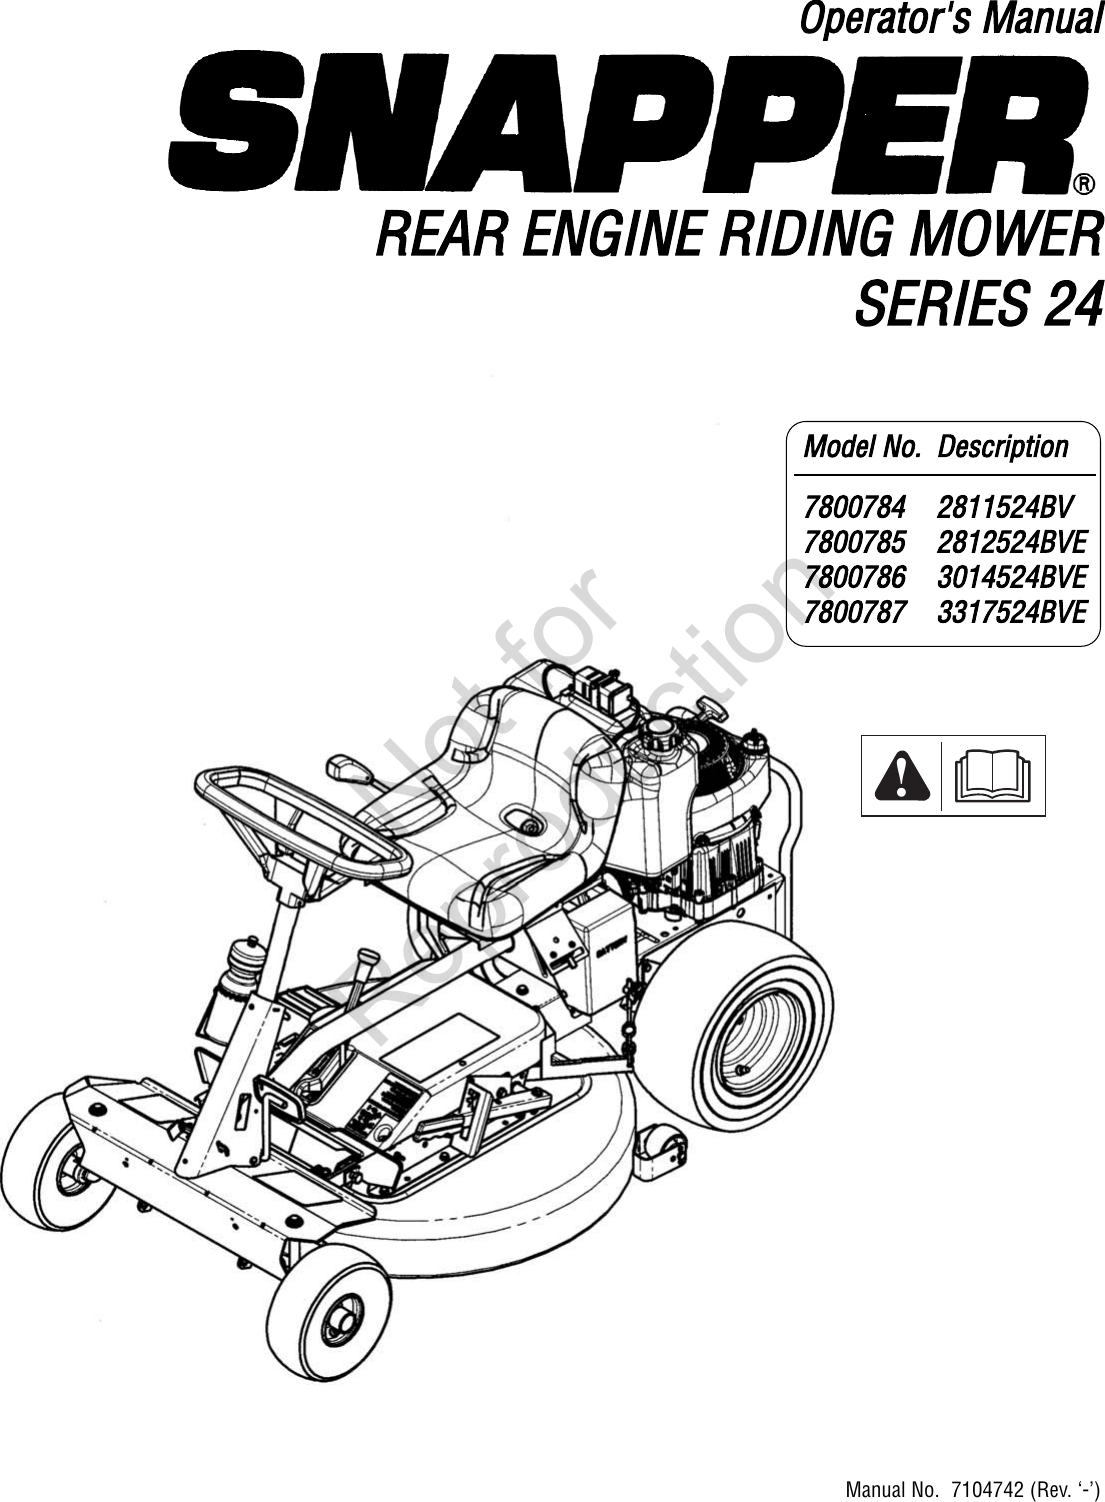 Snapper Agco Lawn Mower 7800784 Users Manual